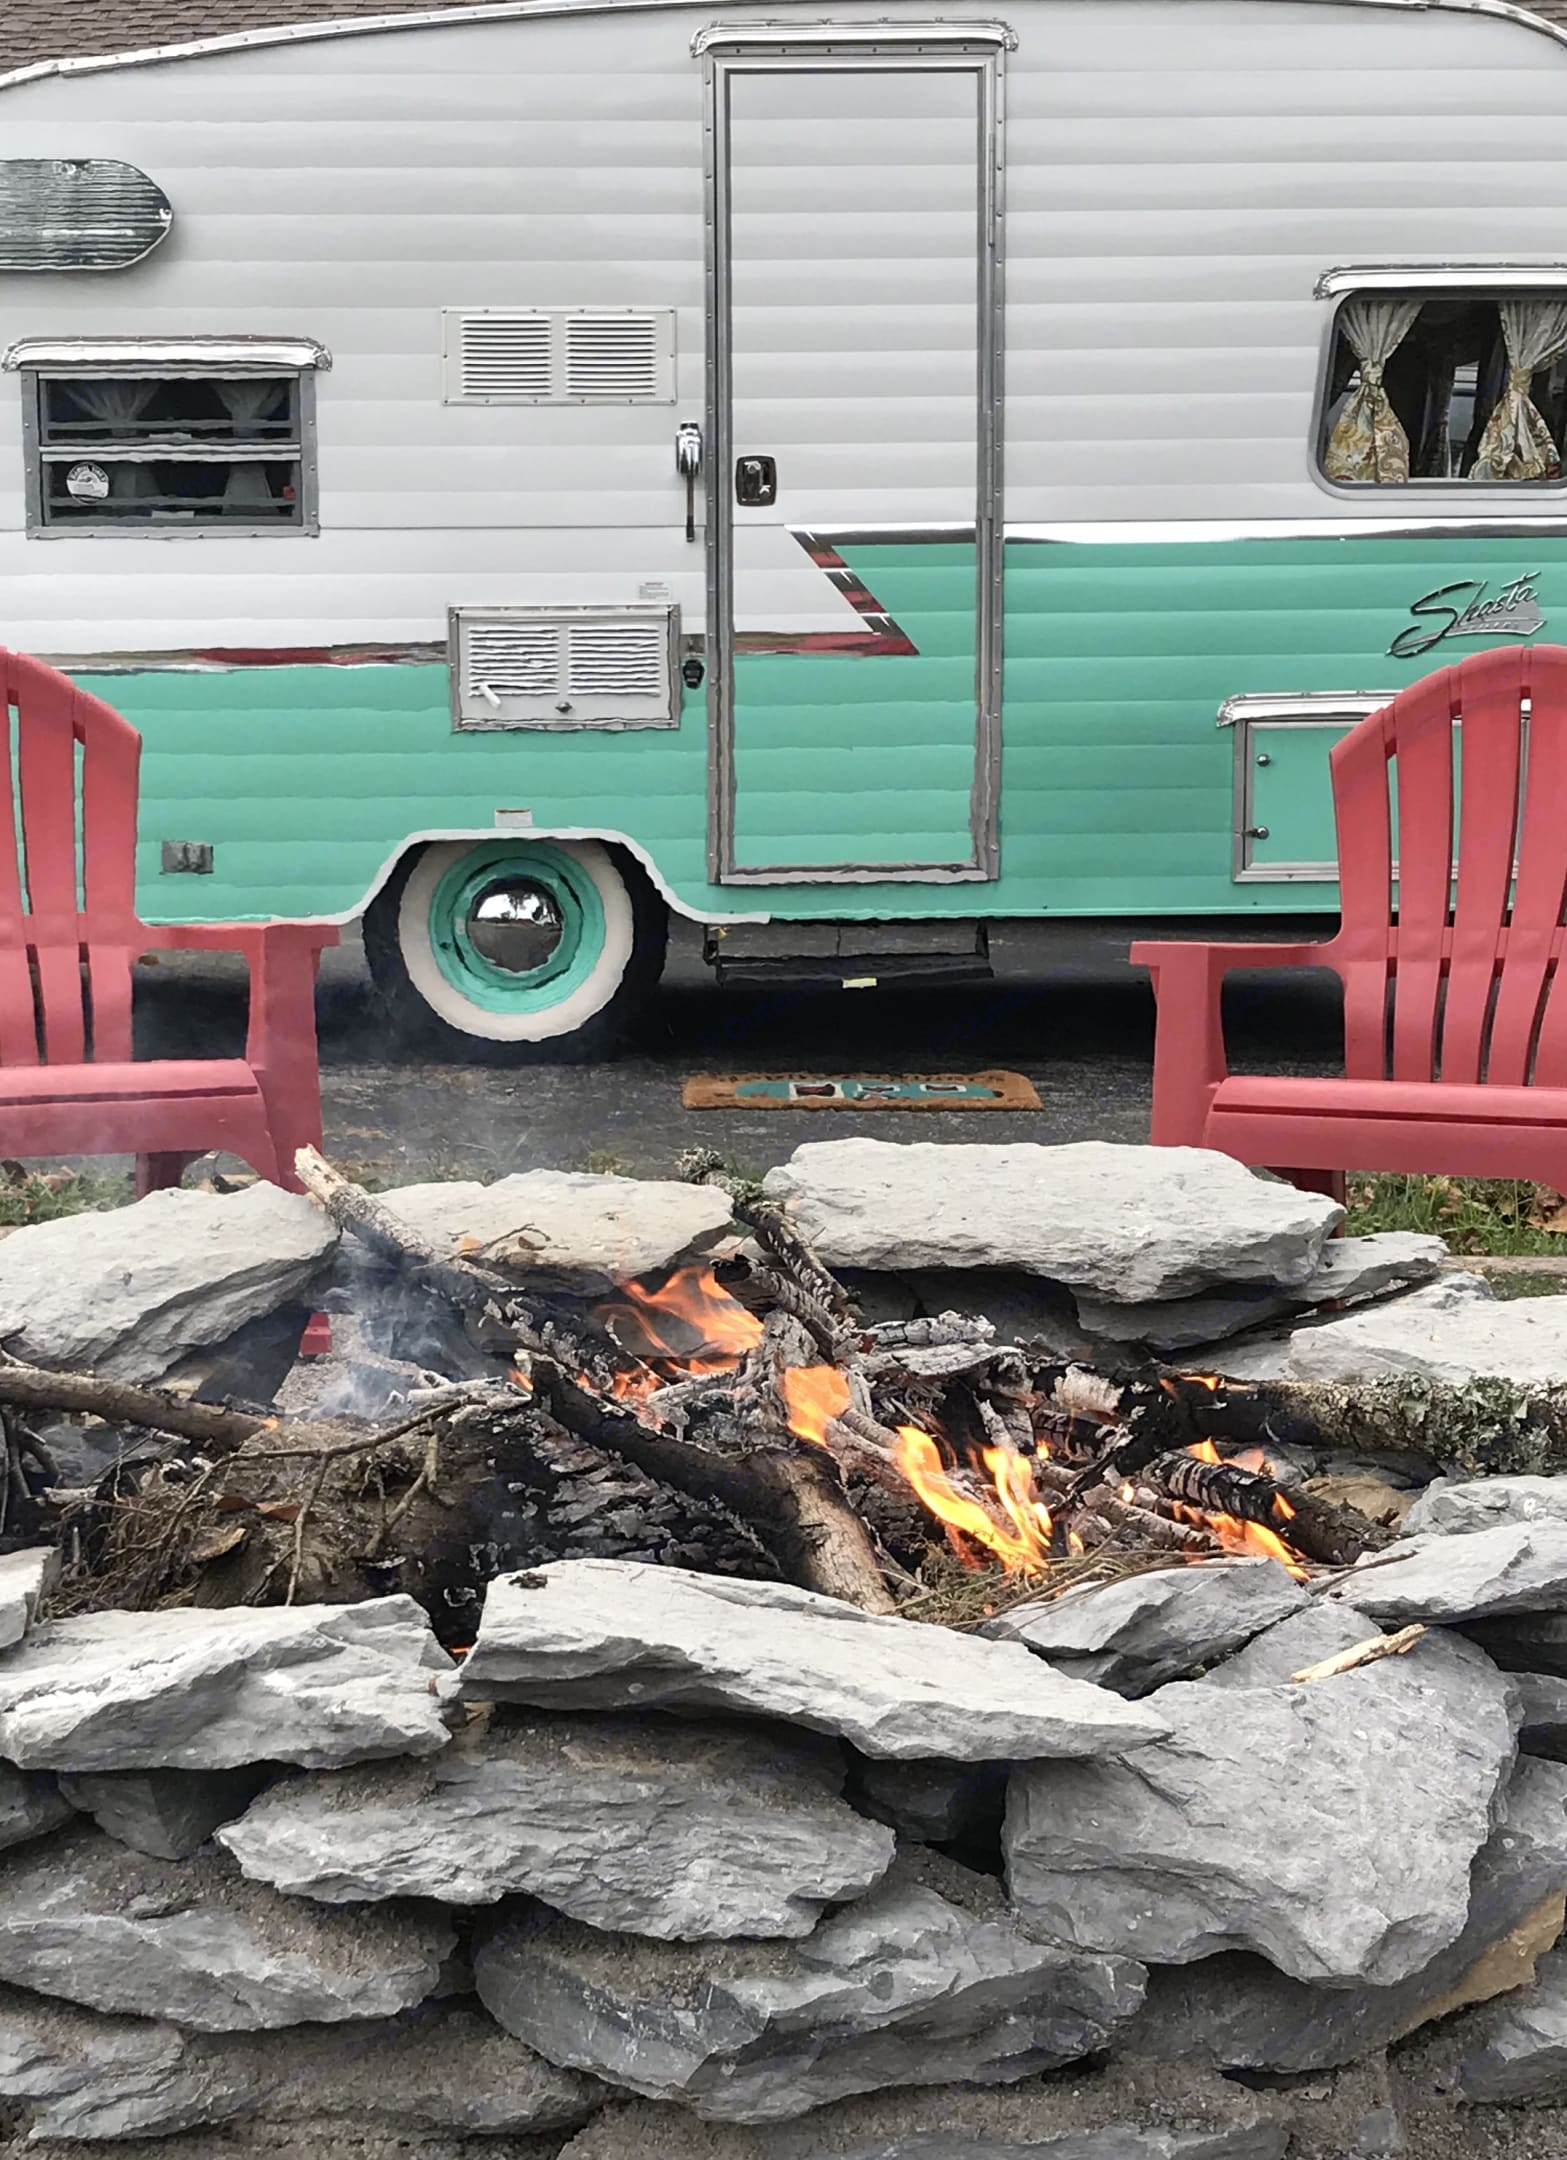 Gather around the campfire and enjoy retro camping at its finest with this mint re-issued Shasta Airflyte trailer.. Shasta Airflyte 2015